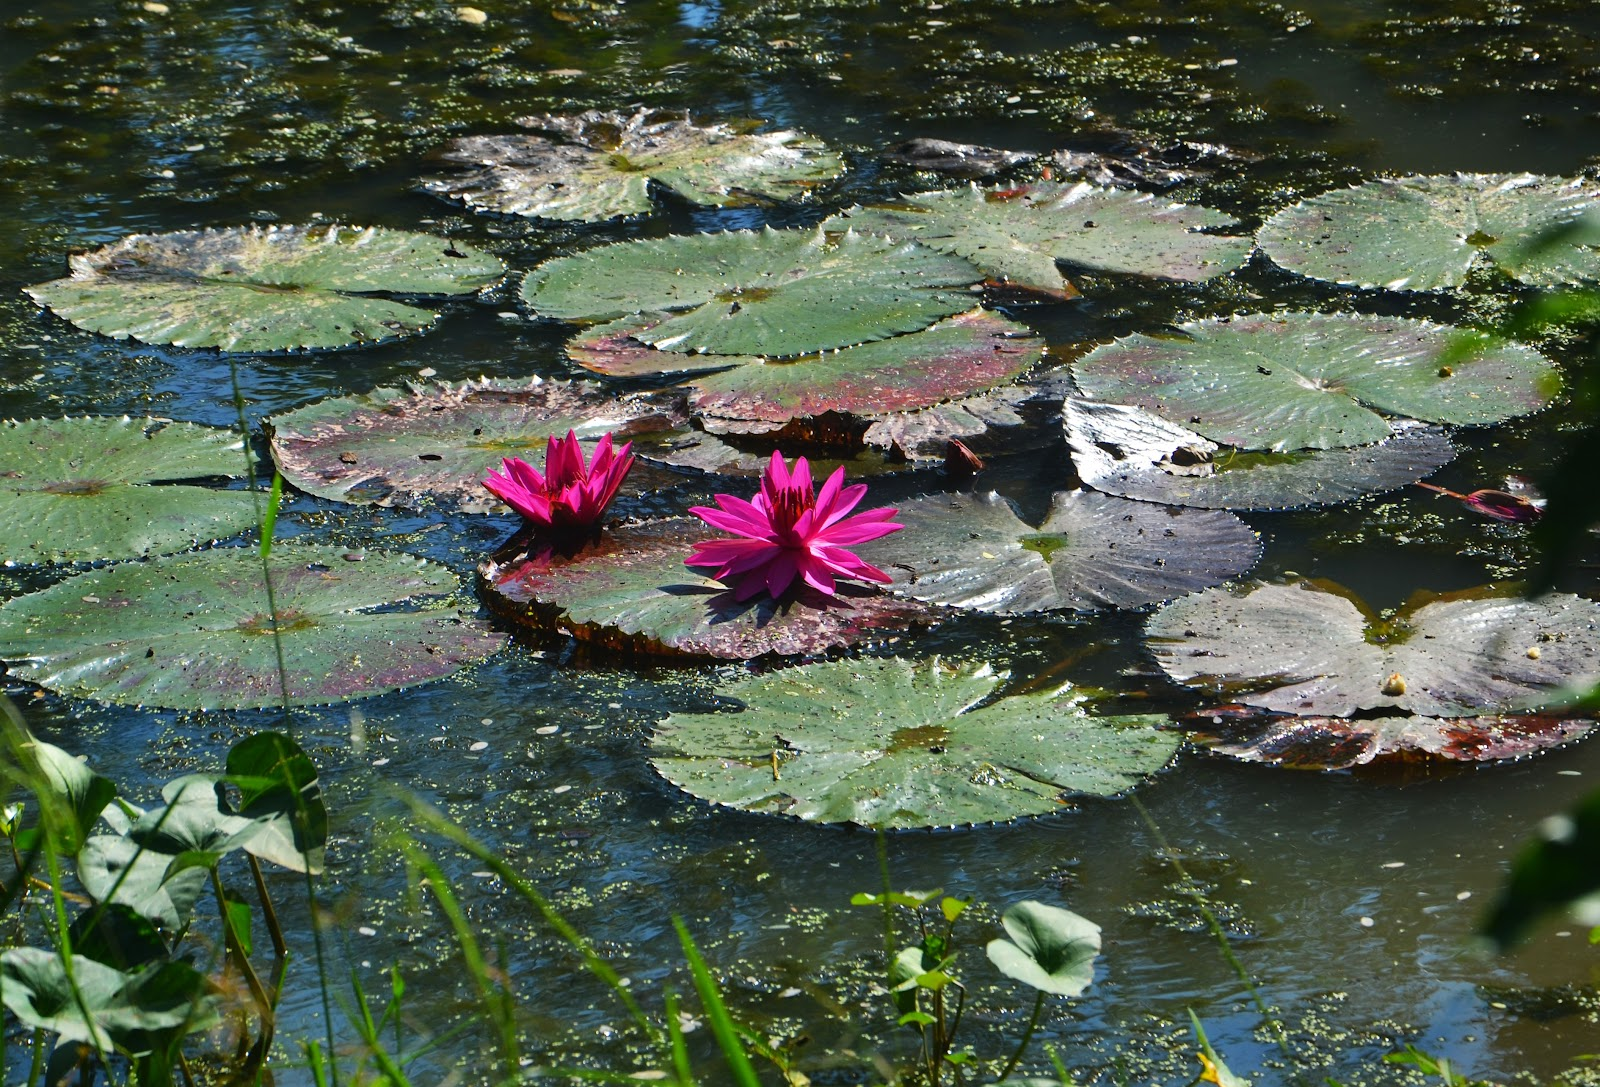 landscape-water-nature-outdoor-light-plant-leaf-flower-lake-view-summer-vacation-travel-pond-stream-reflection-tranquil-color-peaceful-natural-park-scenery-calm-botany-garden-tourism-aquatic-plant-flora-body-of-water-leaves-wetland-mountain-lake-scene-water-park-lily-natural-beauty-flowering-plant-beautiful-landscape-fish-pond-peaceful-background-land-plant-685353.jpg